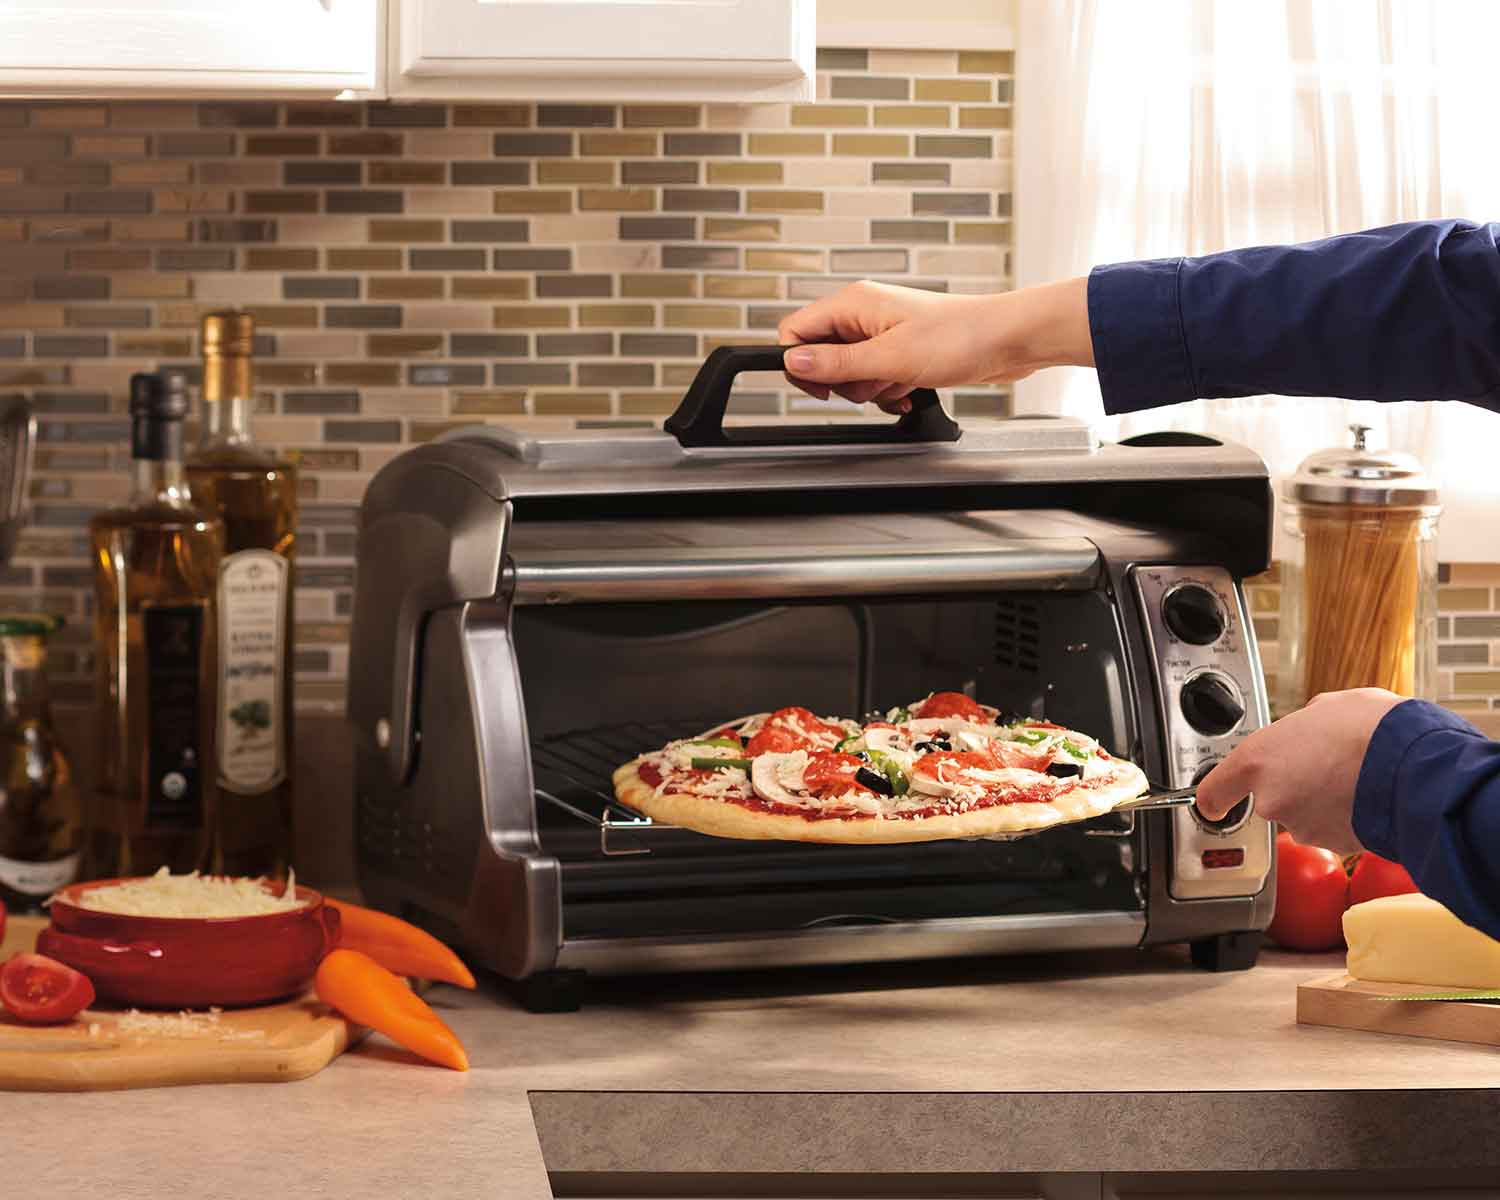 Bake pizza in toaster oven